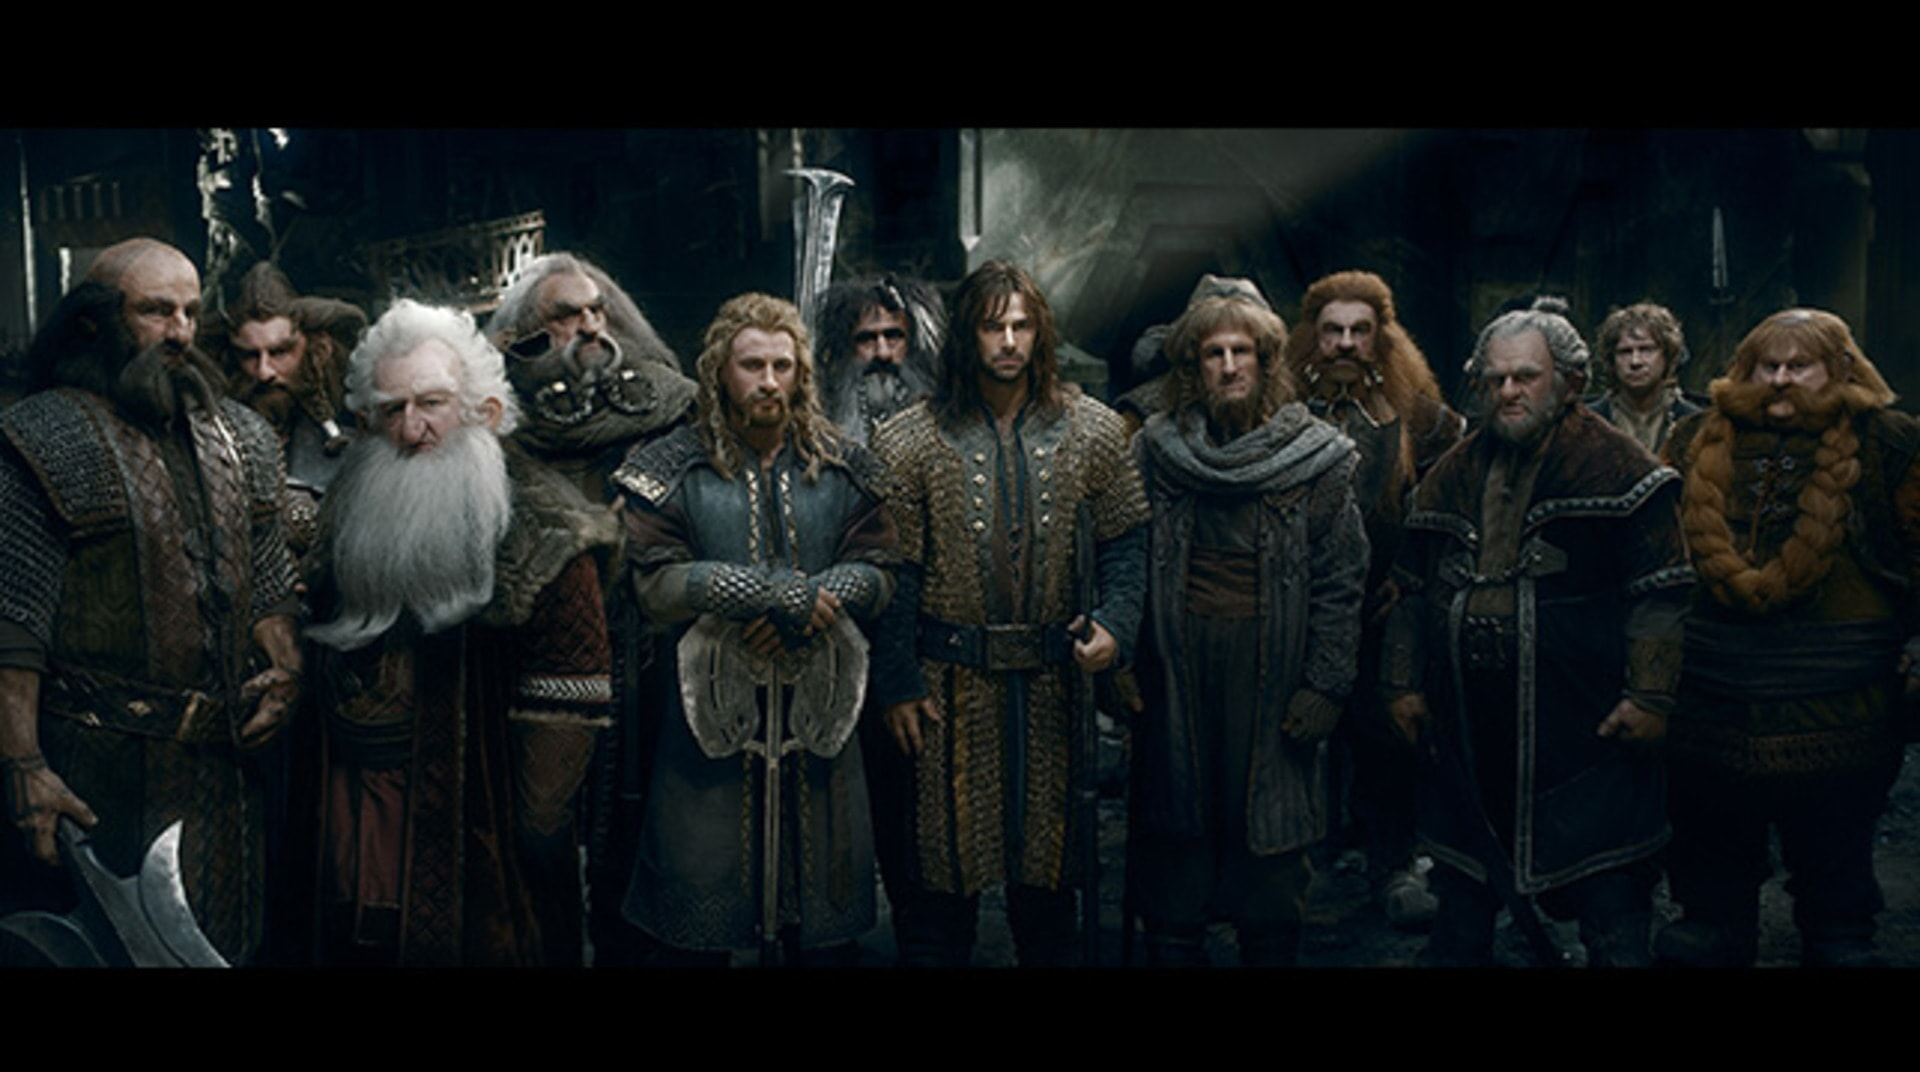 The Hobbit: The Battle of the Five Armies - Image 57